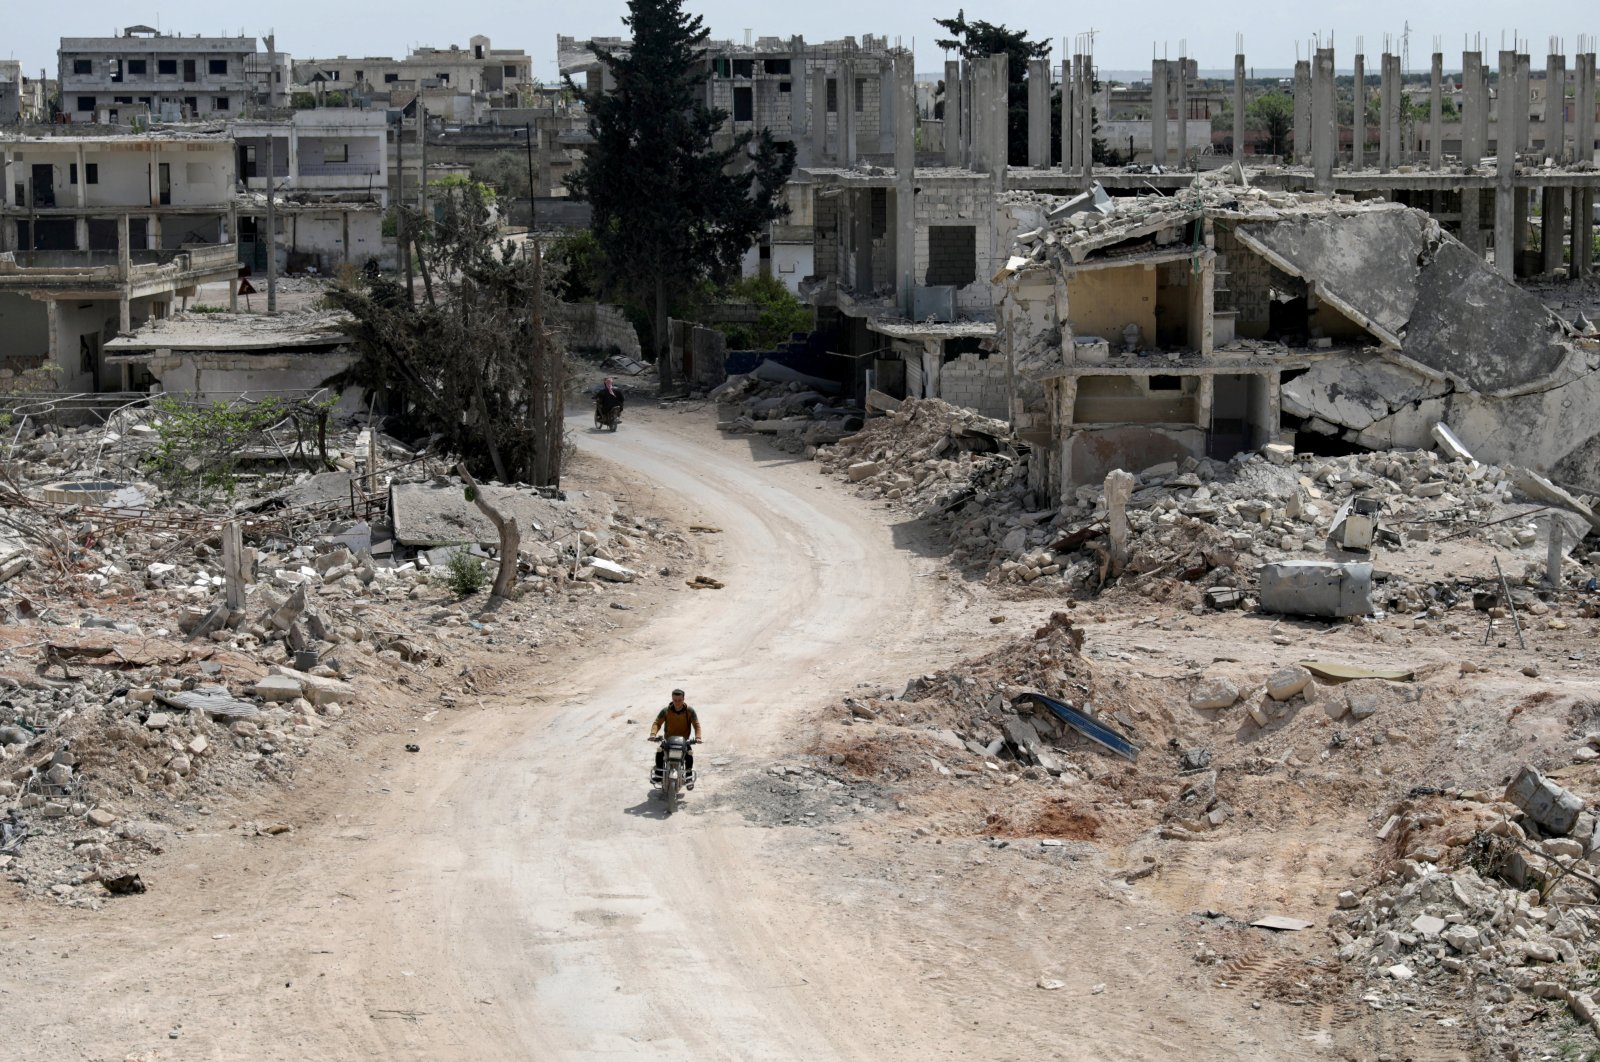 A man rides a motorbike past damaged buildings in the opposition-held town of Nairab, Idlib region, Syria April 17, 2020. (REUTERS Photo)